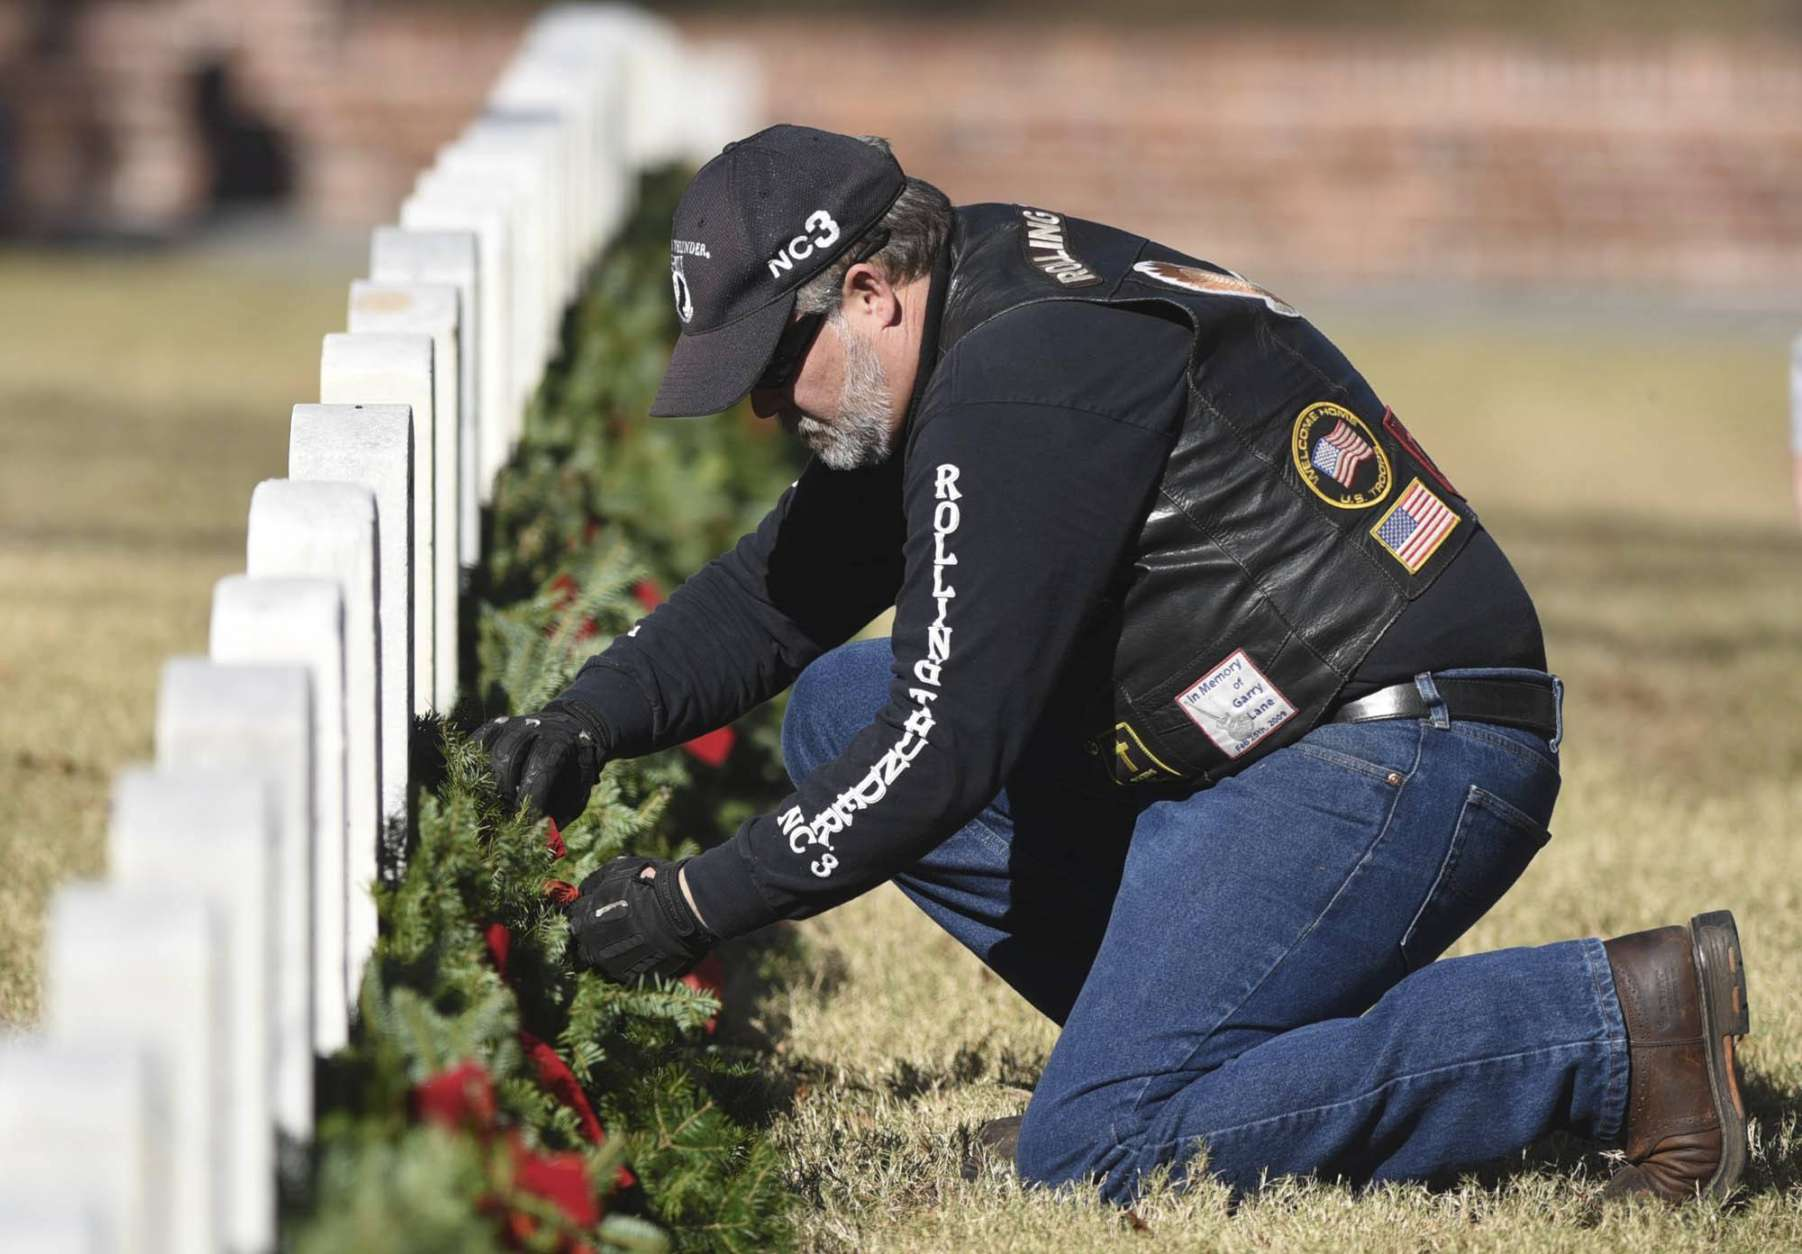 Matt Wall, with Rolling Thunder, places a wreath on a headstone during the annual Wreaths Across America event at Wilmington National Cemetery in Wilmington, N.C. Saturday, Dec.16, 2017. More than 5,000 wreaths were placed on headstones across the cemetery. The program is carried out nationally every December at Arlington National Cemetery, as well as over 1,200 additional locations in all 50 U.S. states, at sea, and abroad.   (Matt Born/The Star-News via AP)